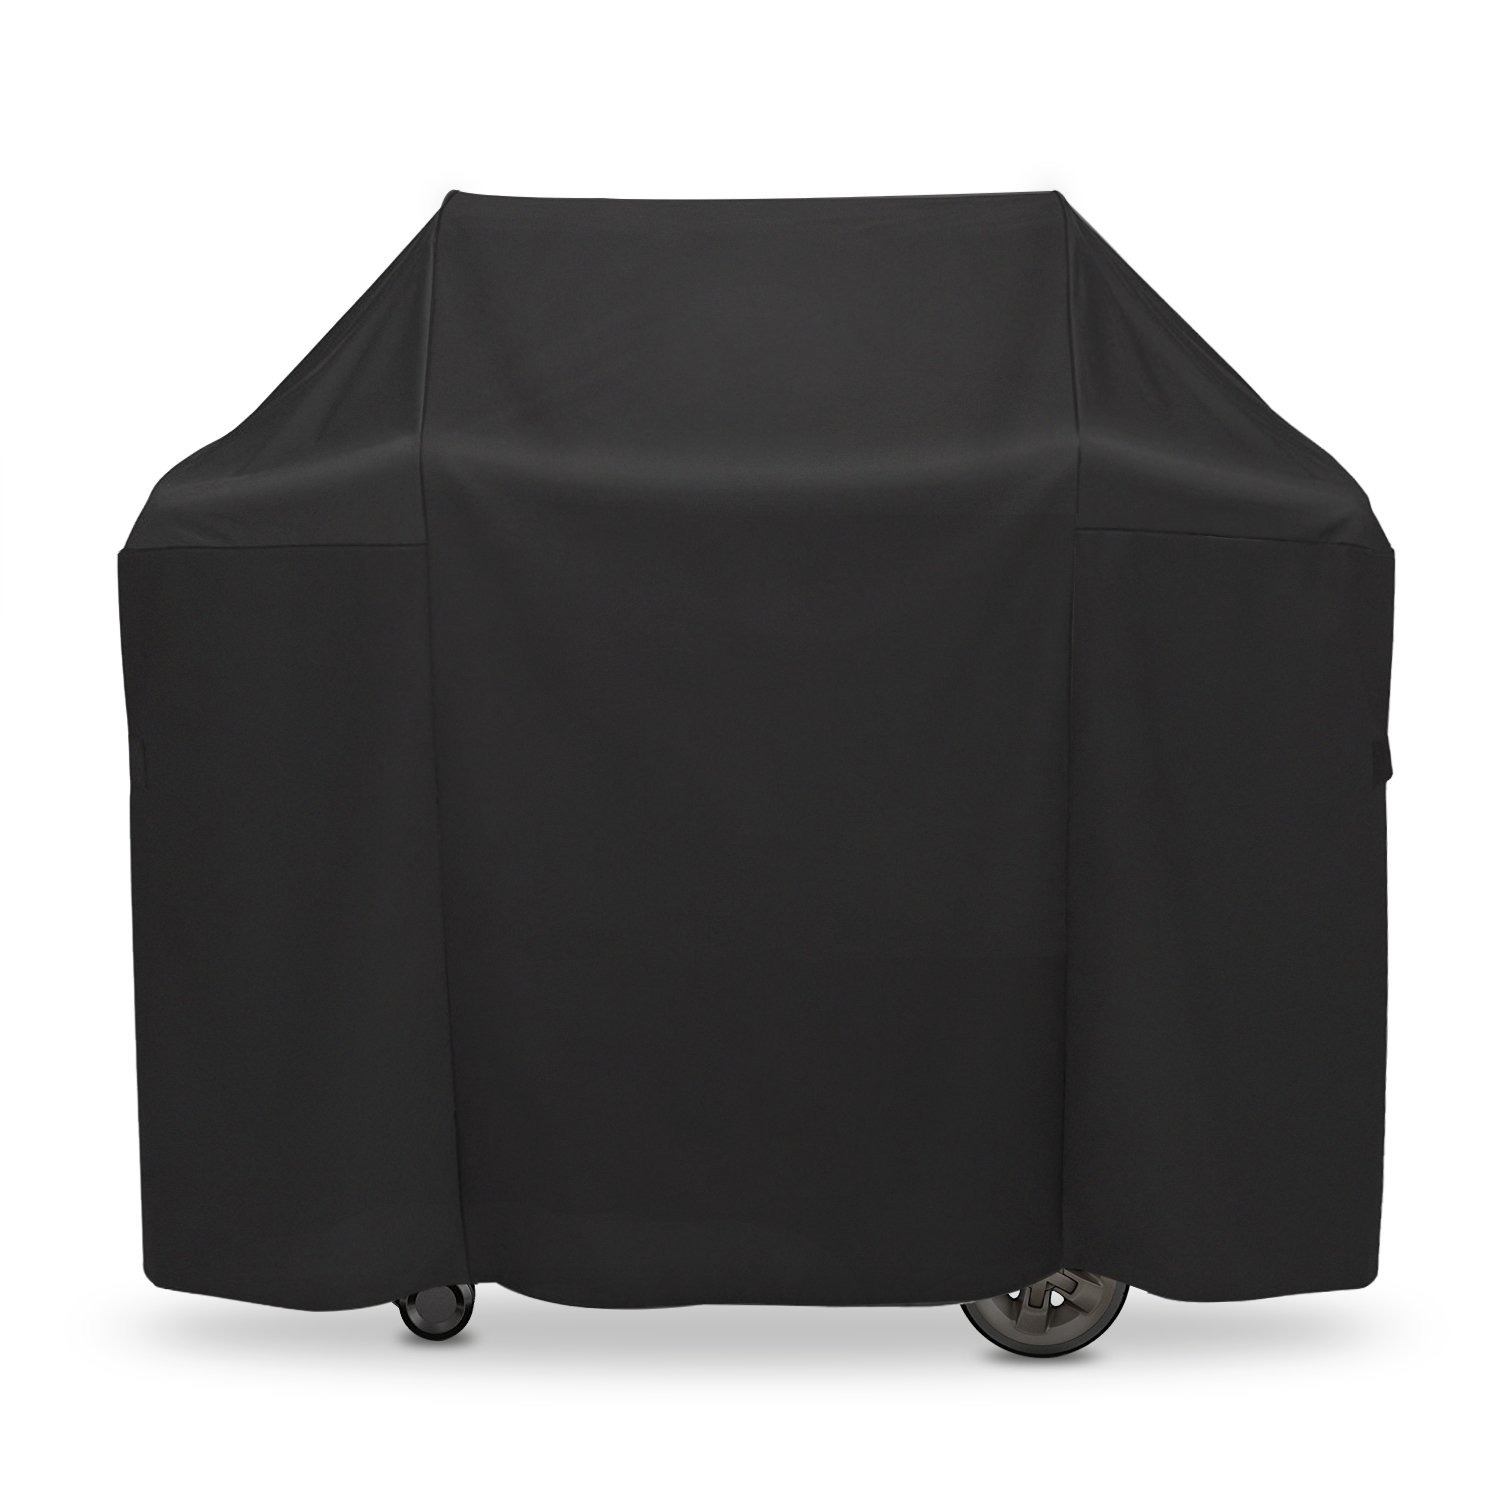 """Onlyfire 52-inch Grill Cover Fits for Weber Genesis II and Genesis II LX 200 Series Gas Gill Char-Broil Nexgrill Brinkmann and More(52""""L25""""W44.5""""H)"""